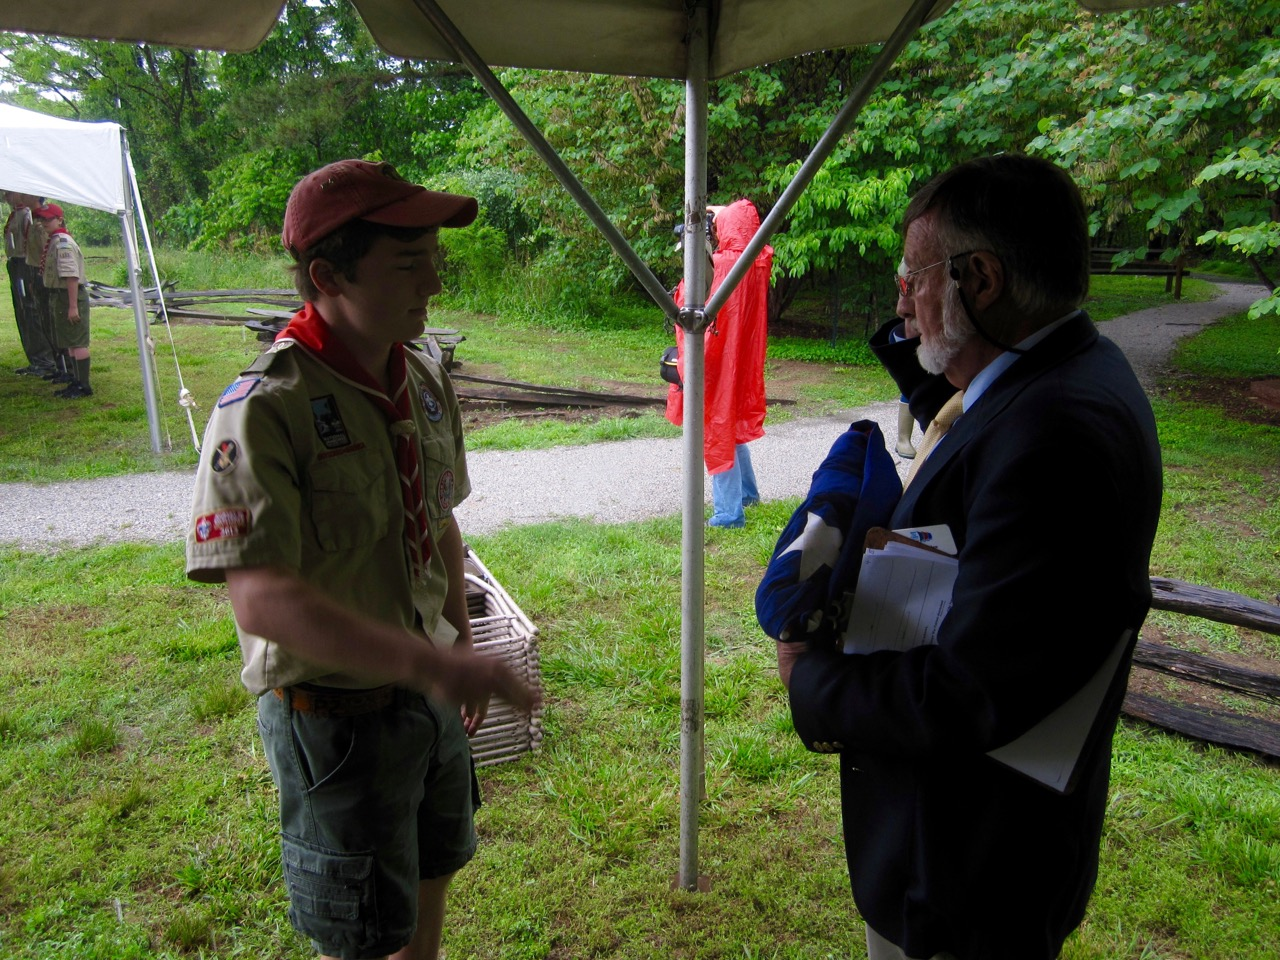 A member of Boy Scout Troop 103 of Williamsburg presents the flag to Mr. Alain C. Outlaw, Archaeologist